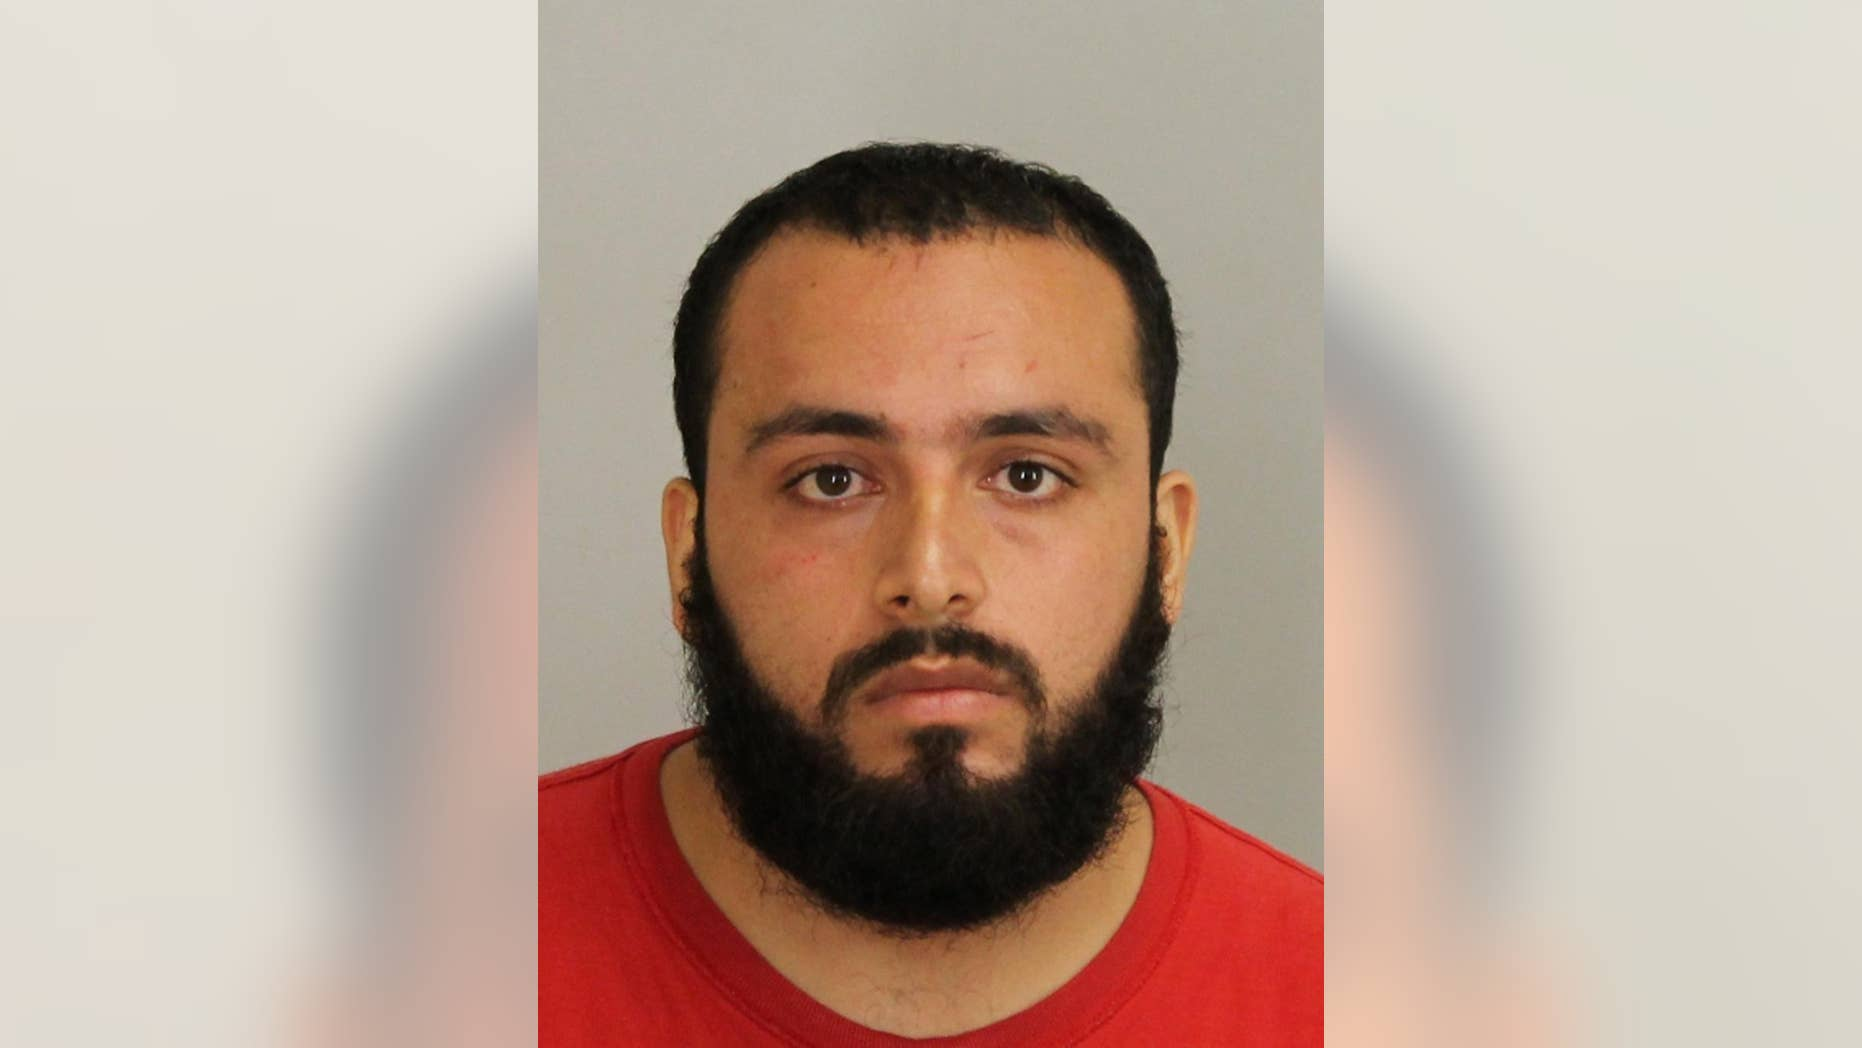 FILE - This Sept. 2016 file photo provided by Union County Prosecutor's Office shows Ahmad Khan Rahimi. He has an appearance Thursday, Nov. 10 in Manhattan federal court to face charges of detonating a pressure cooker bomb in New York City on Sept. 17 that injured more than 30 people. (Union County Prosecutor's Office via AP, File)